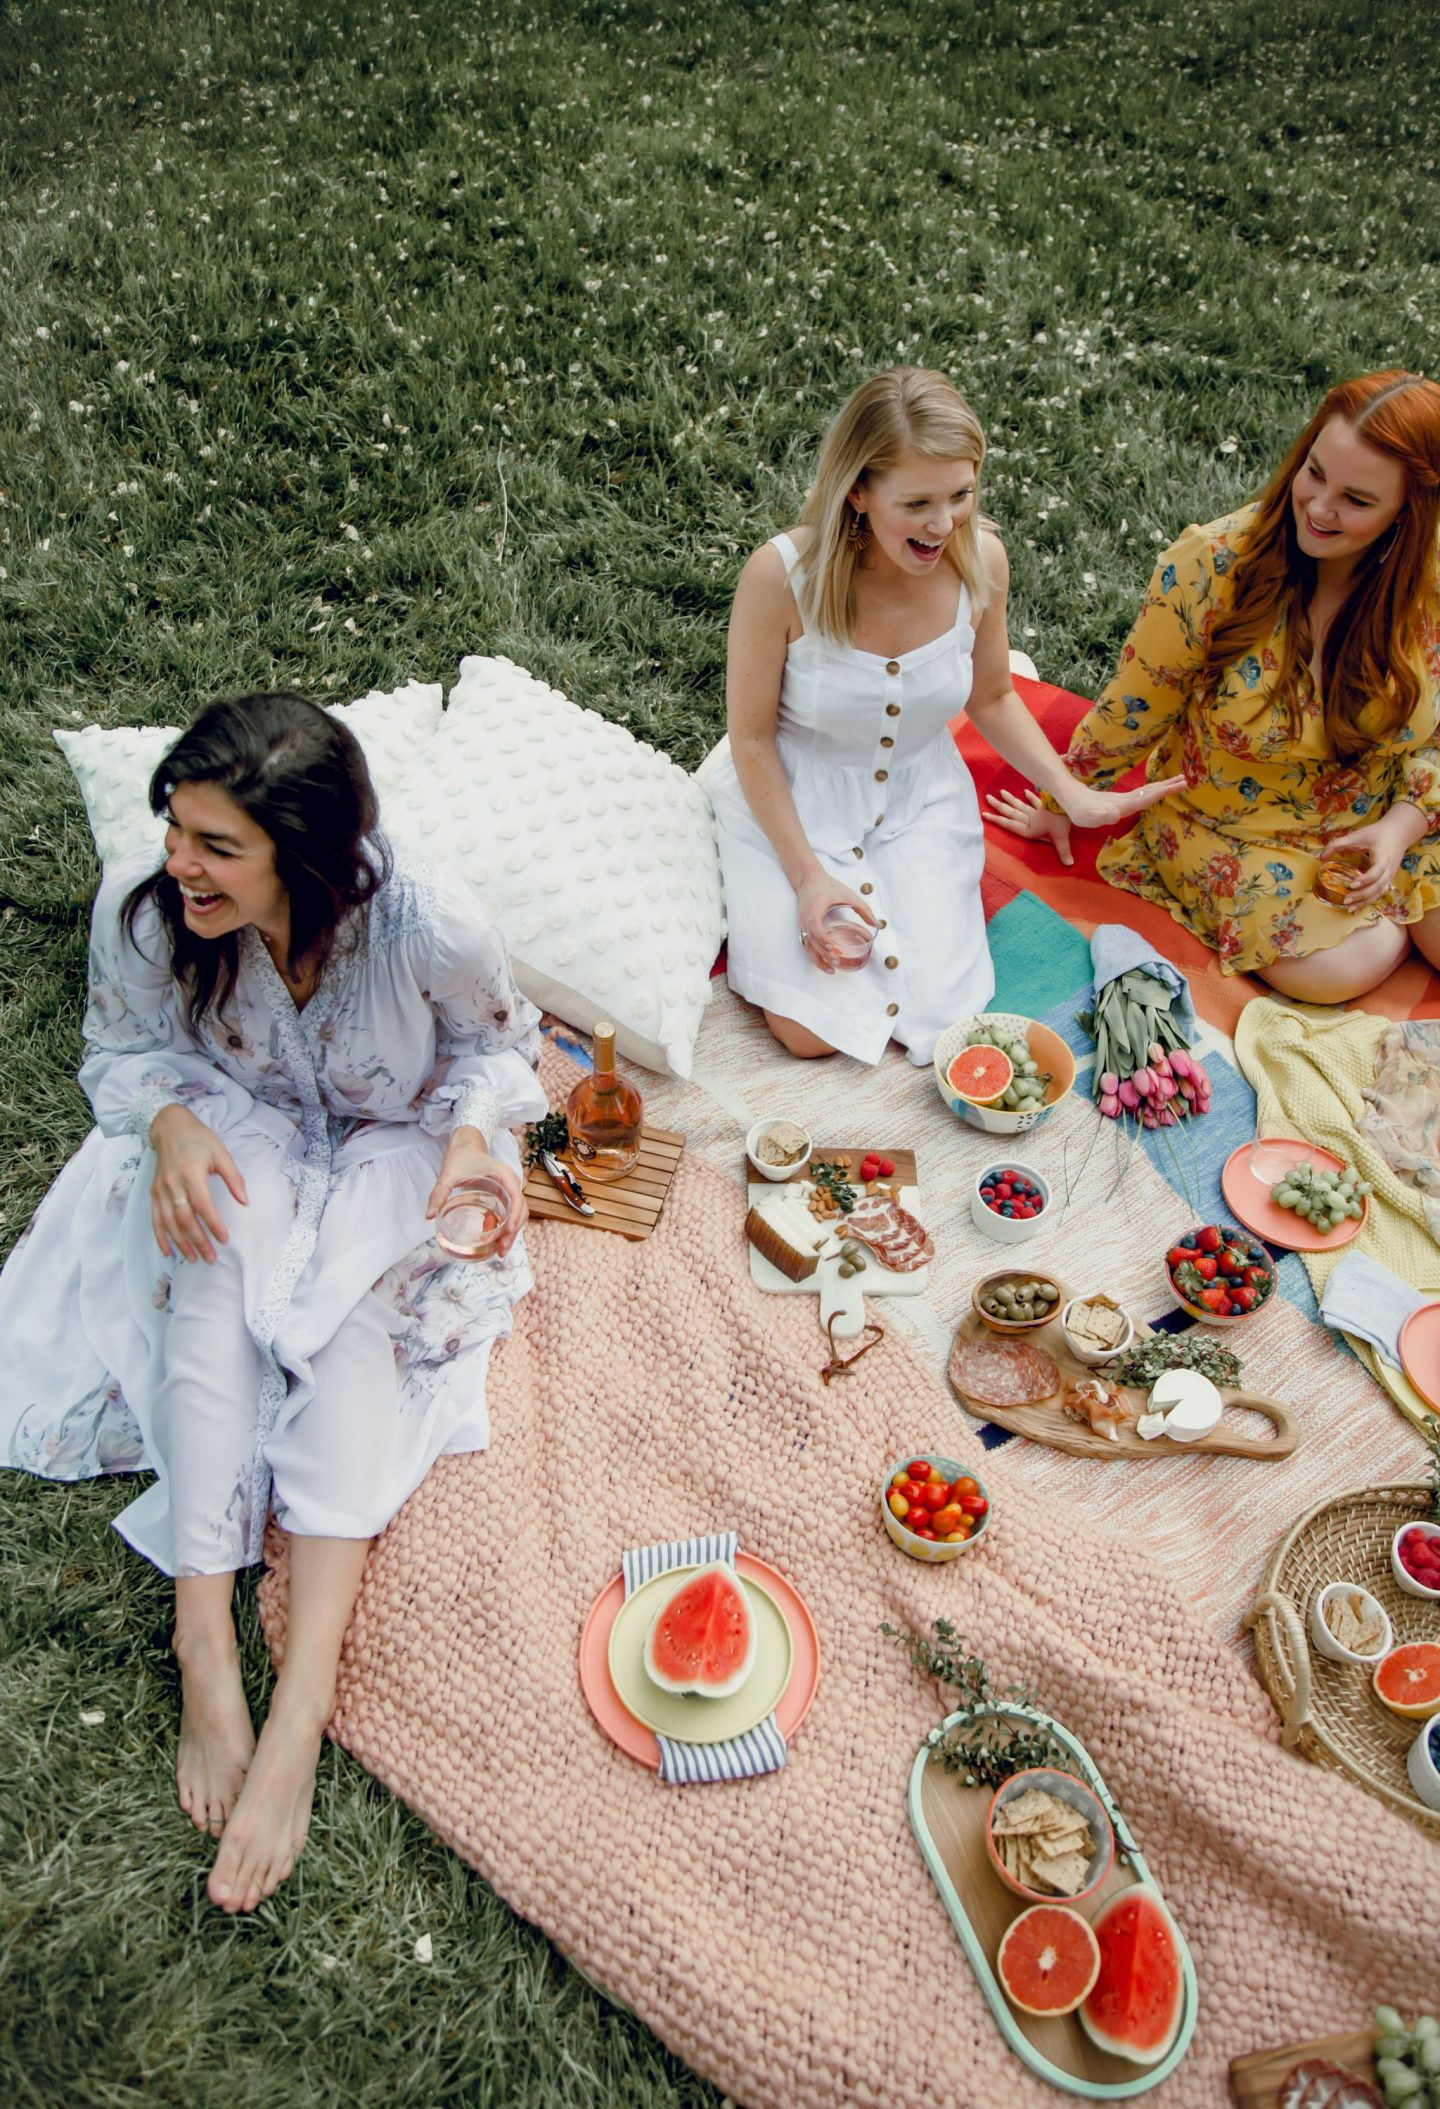 How to Host The Perfect Picnic - Lauren Schwaiger - Charlotte Lifestyle Blogger